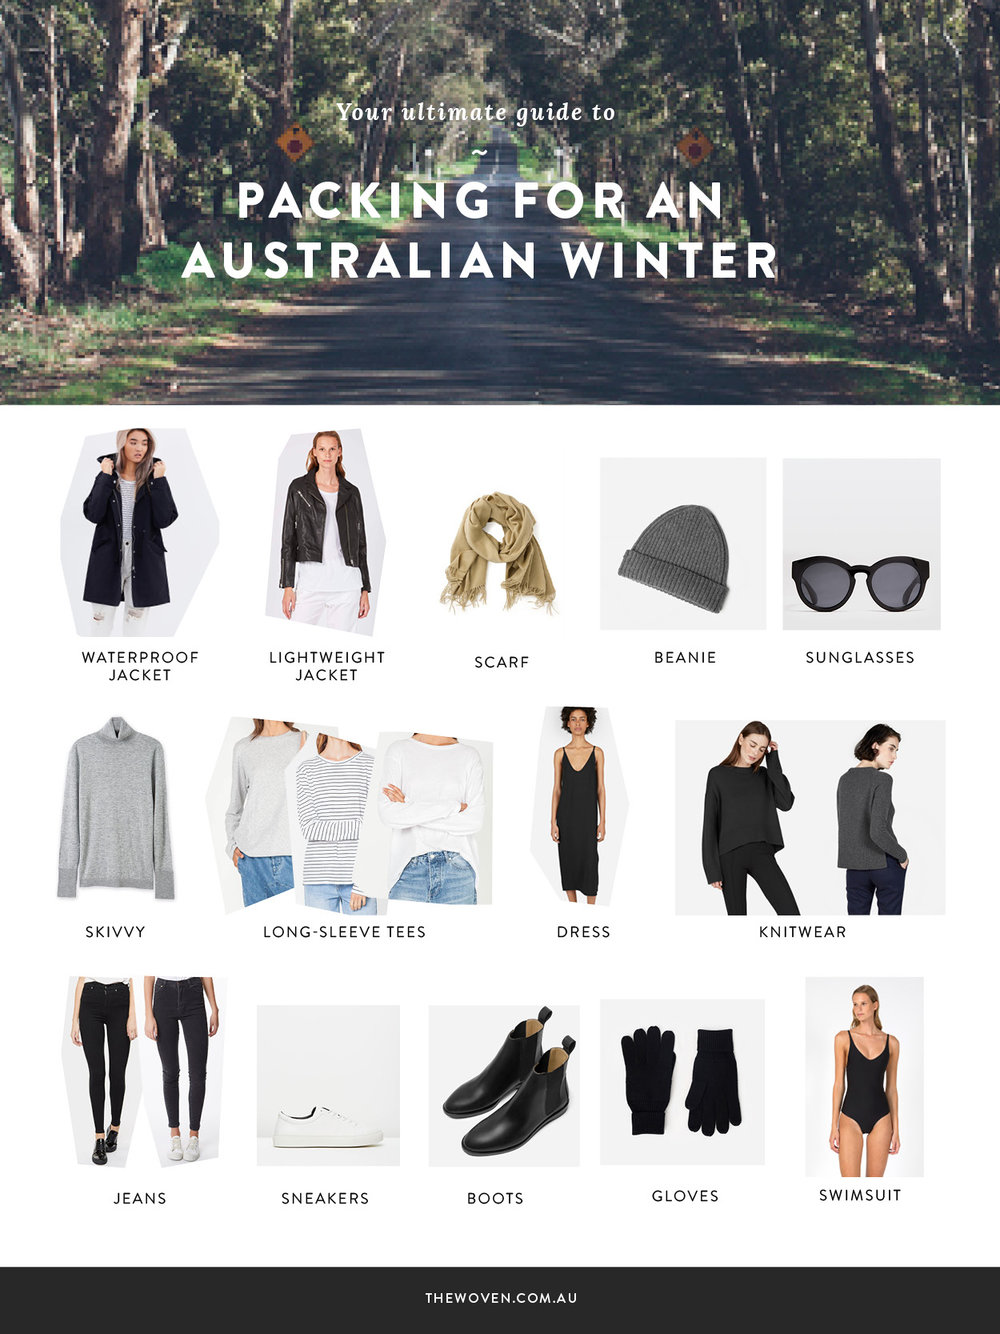 Packing for an Australian winter